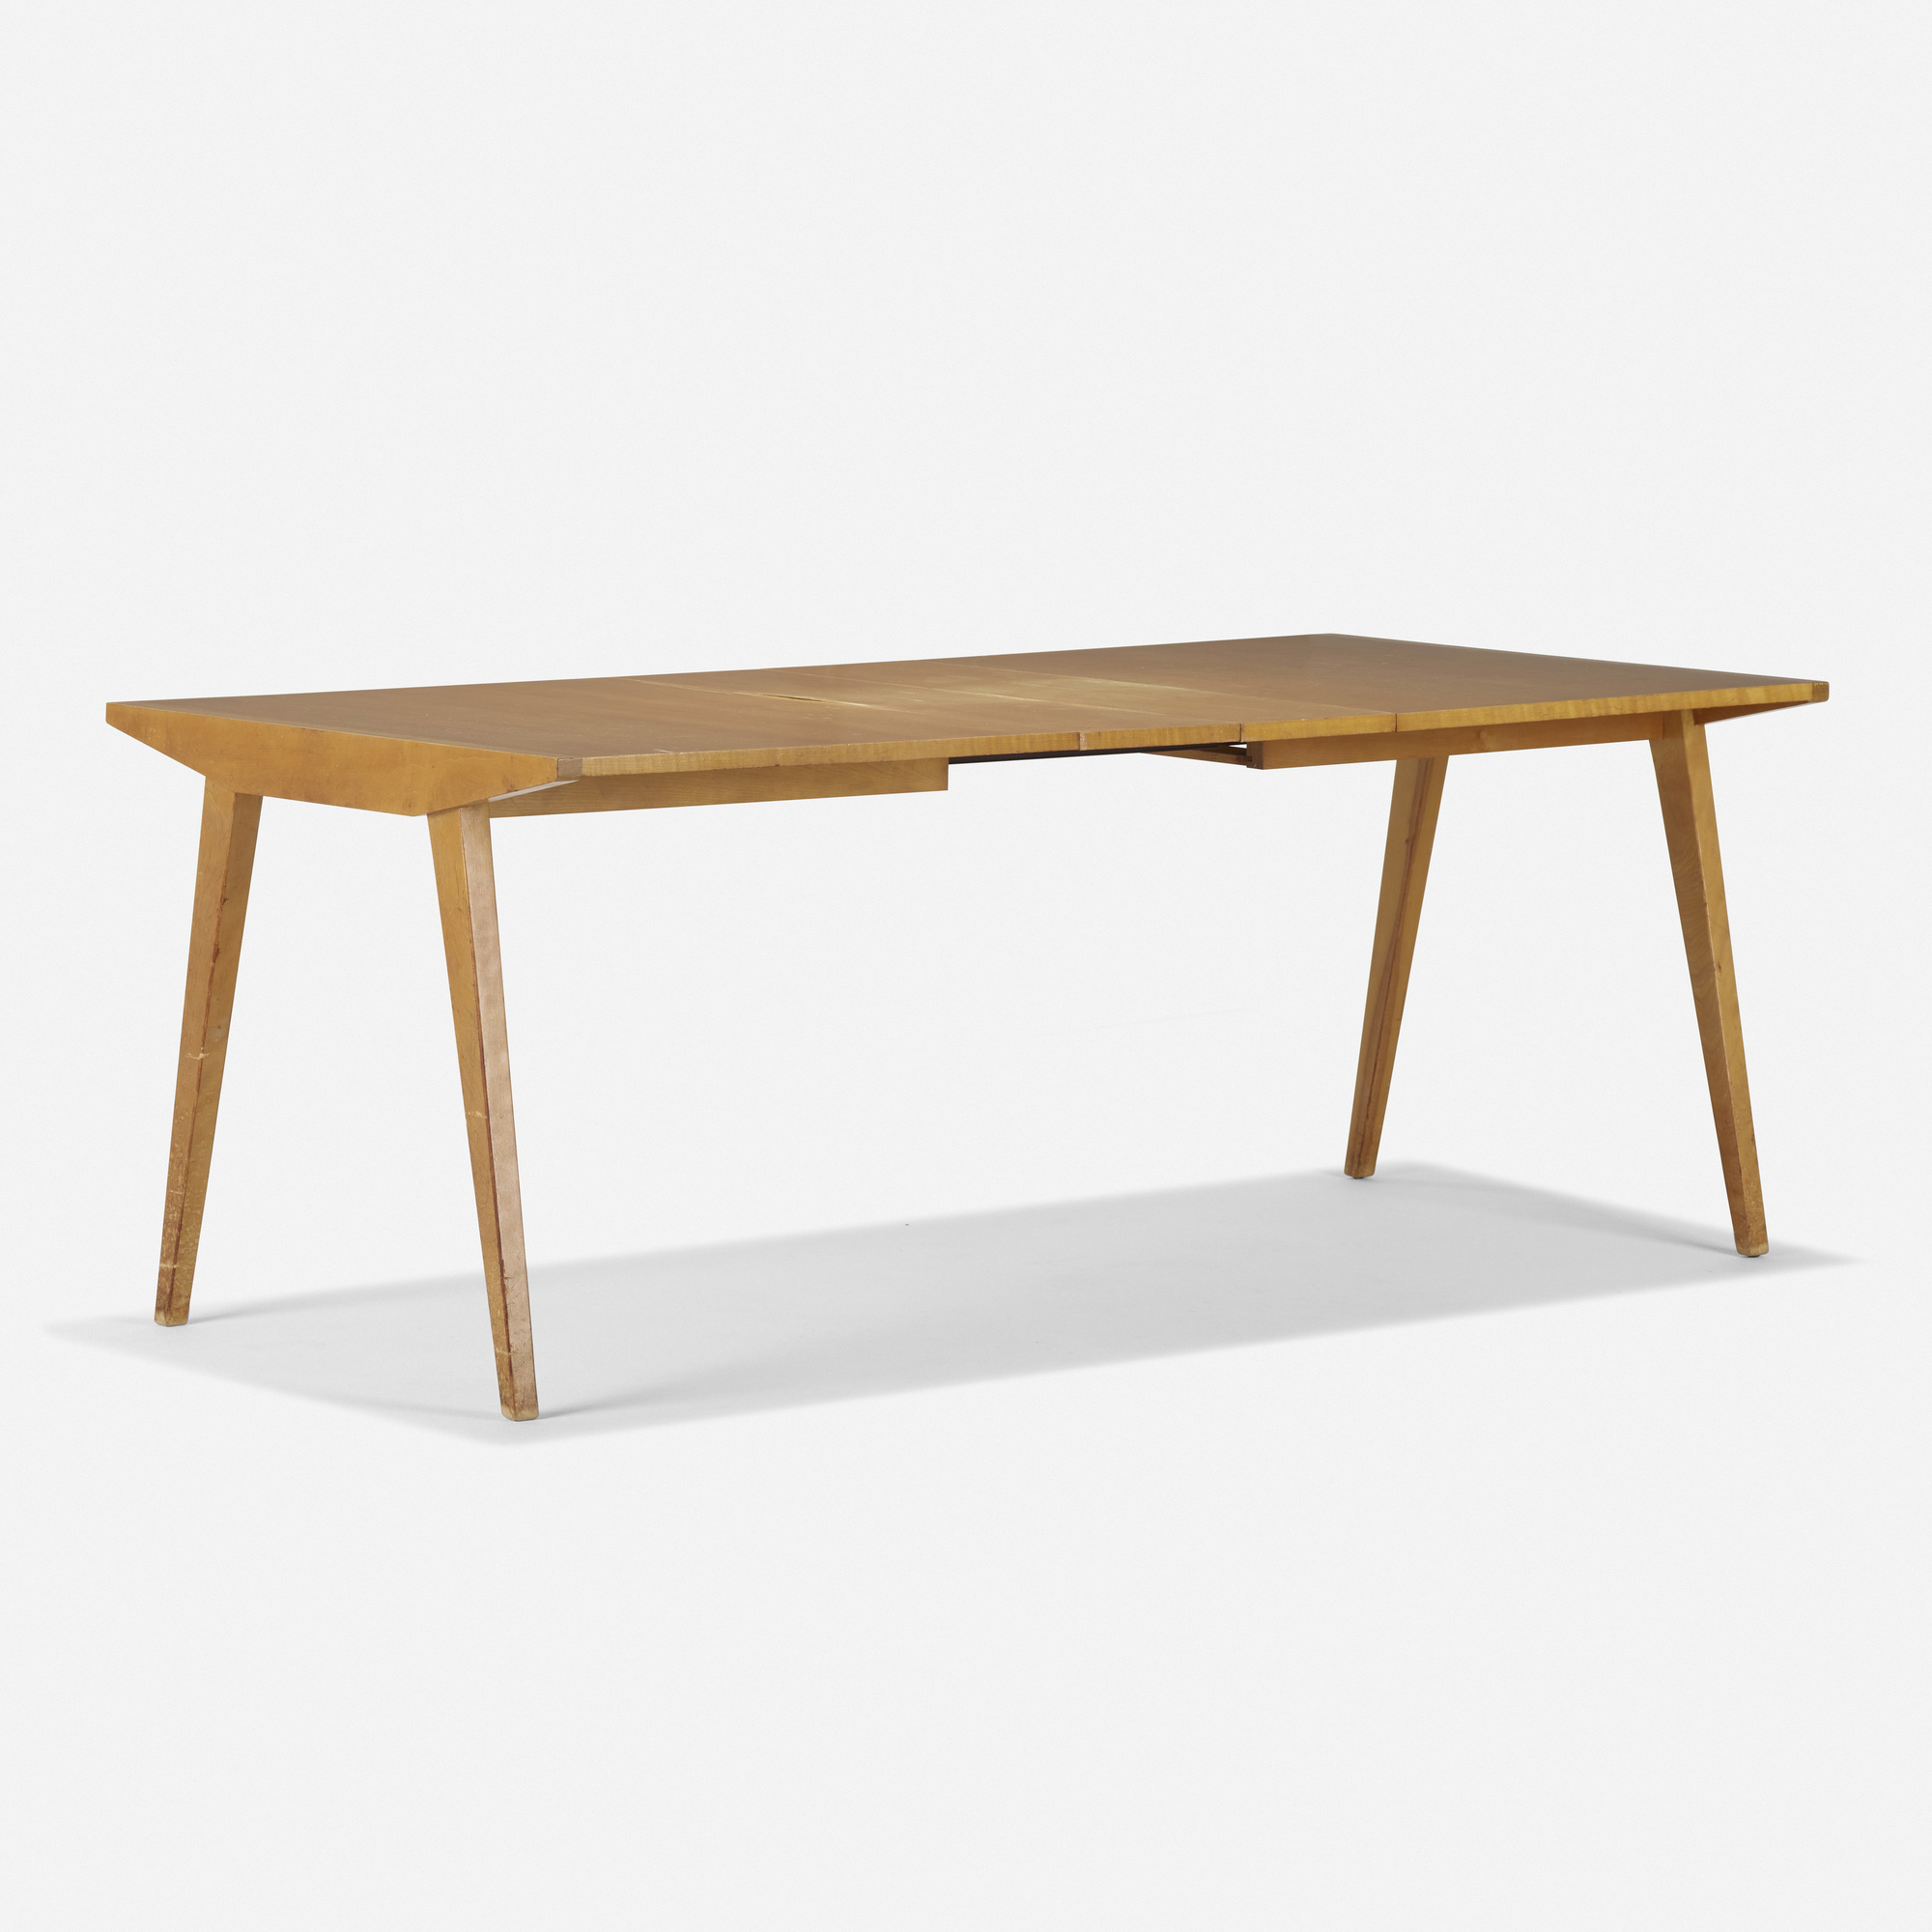 498 George Nakashima Early Extension Dining Table Model Nk 12 10 September 2020 Auctions Wright Auctions Of Art And Design